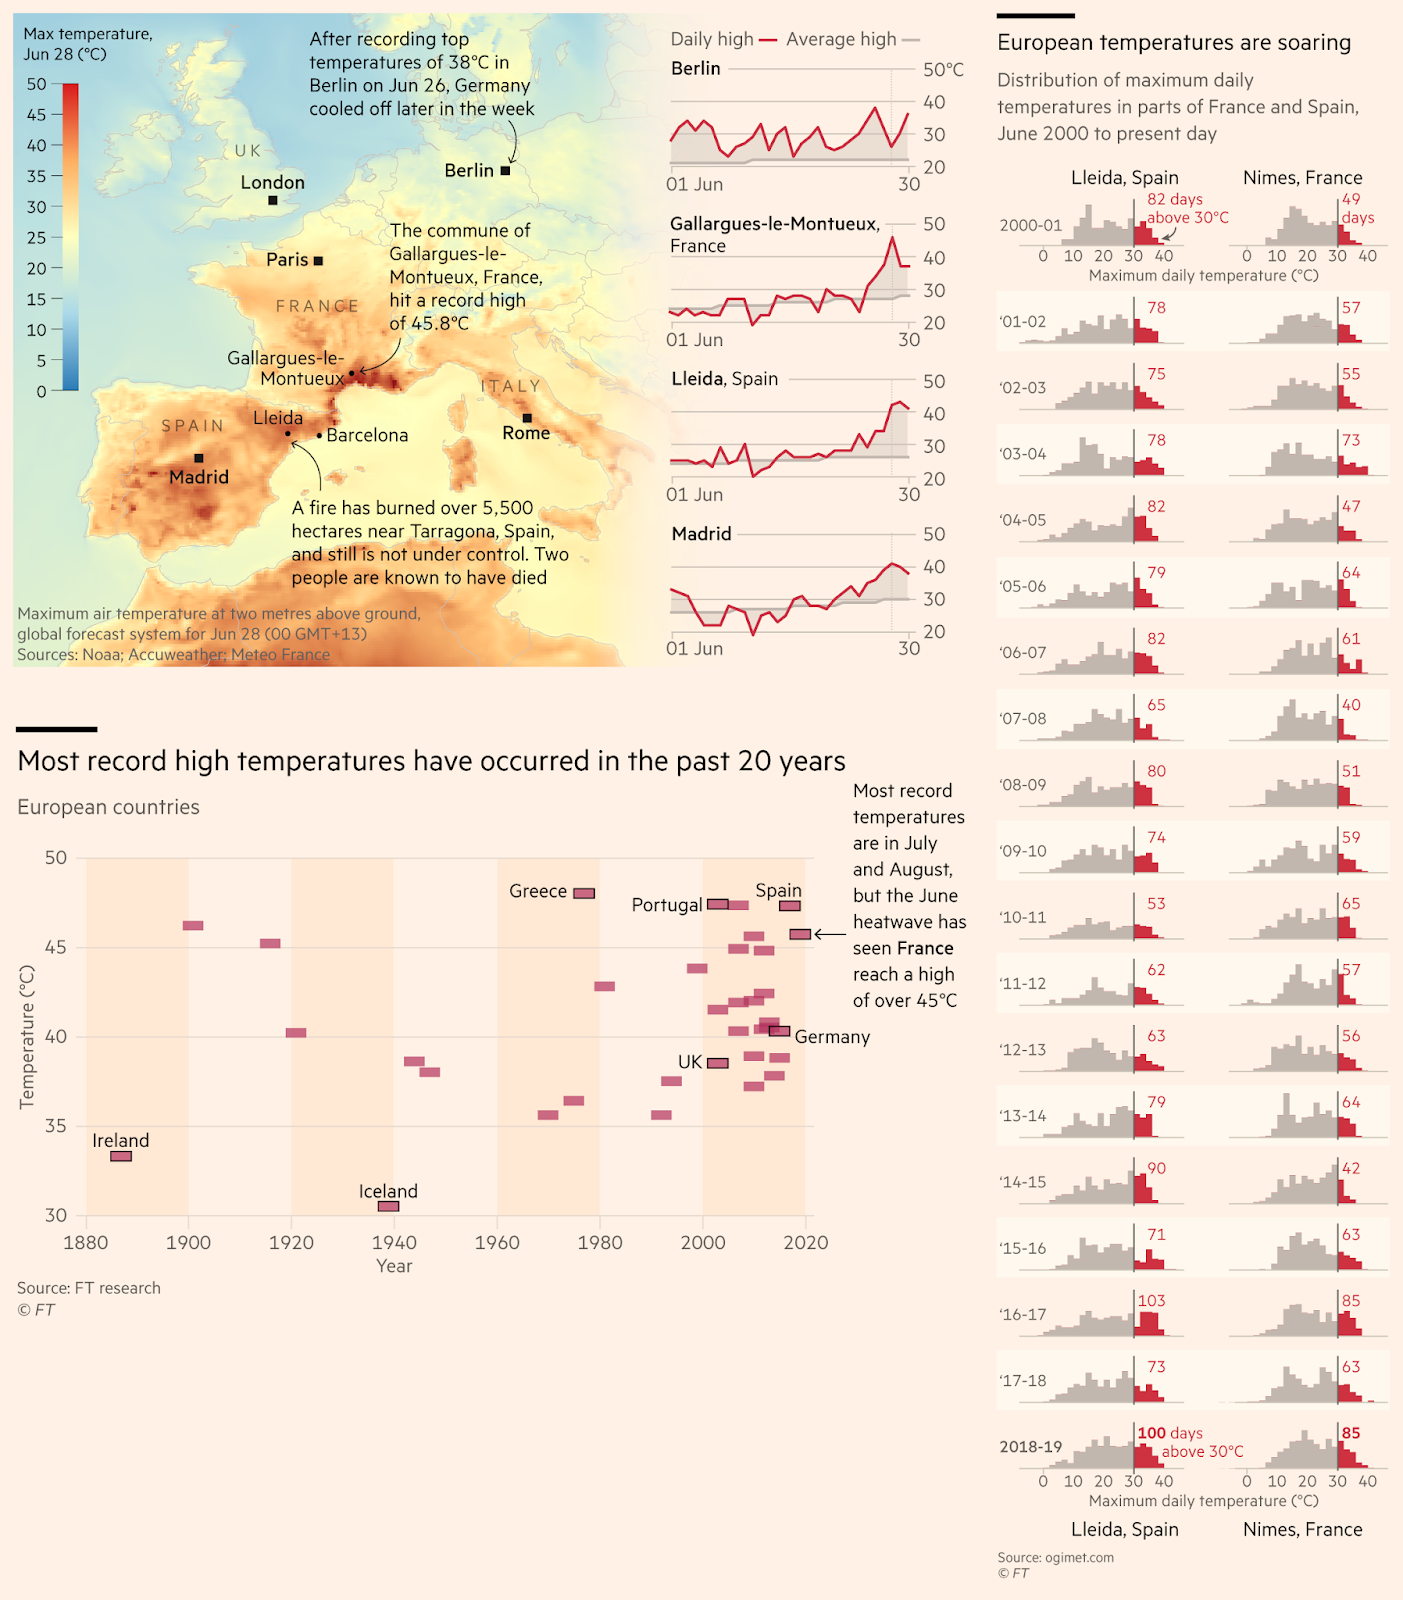 European temperatures are rising, most record temperatures have occurred in the past 20 years